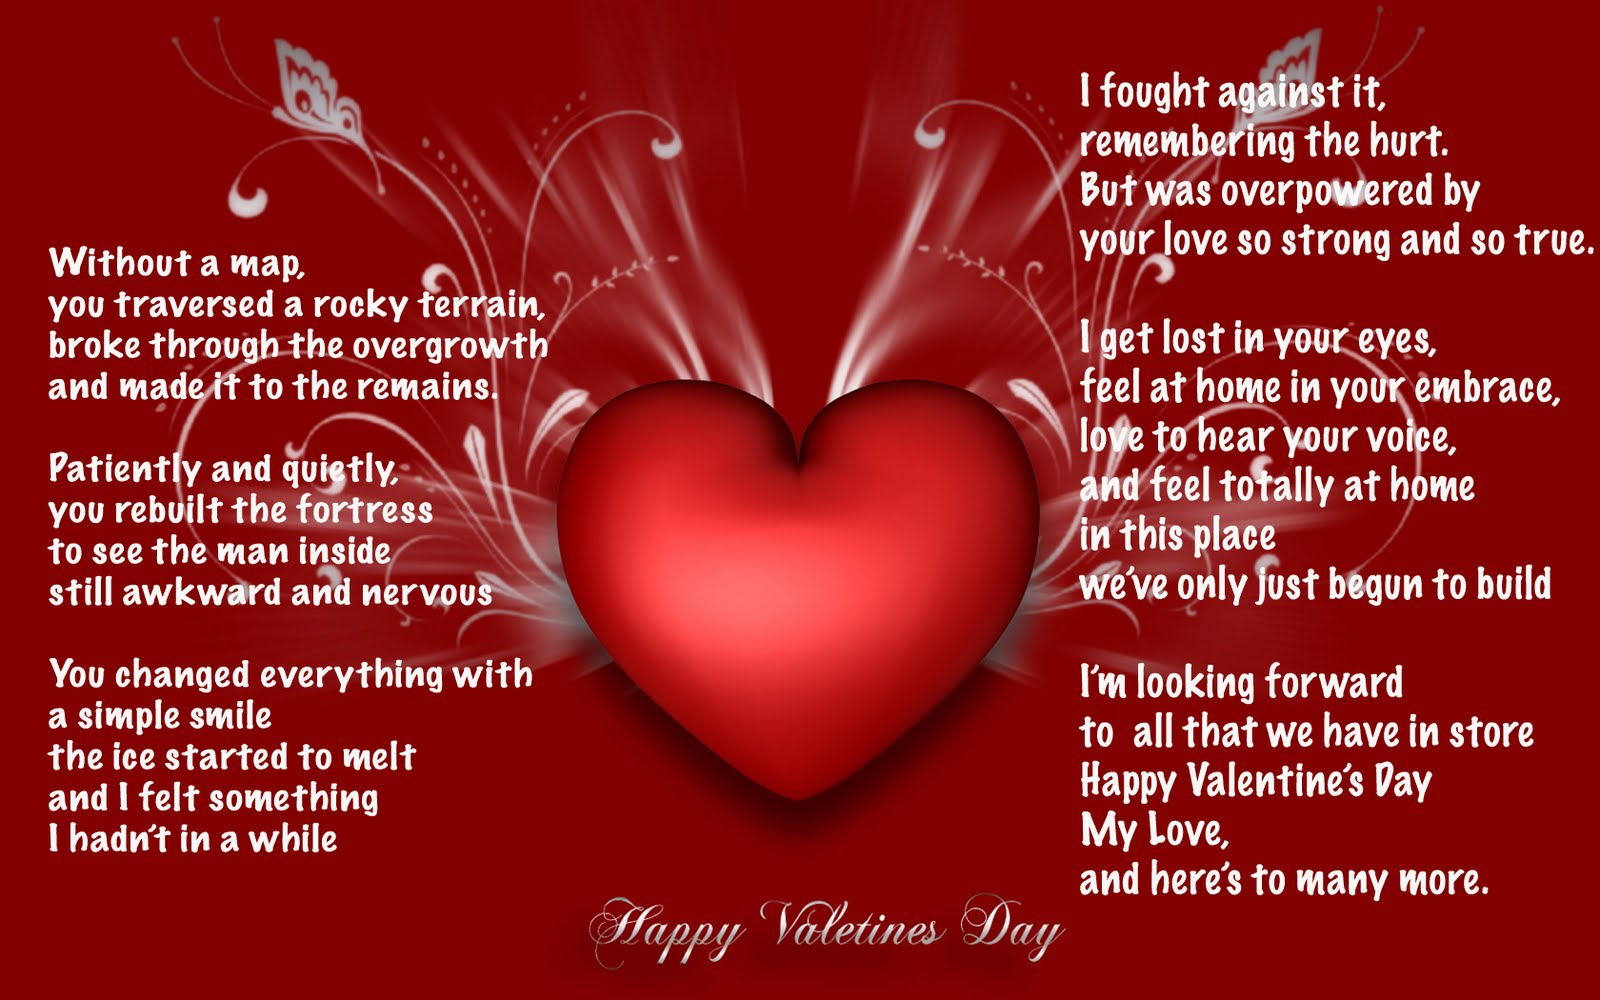 valentines day quotes 2013 new latest pictures